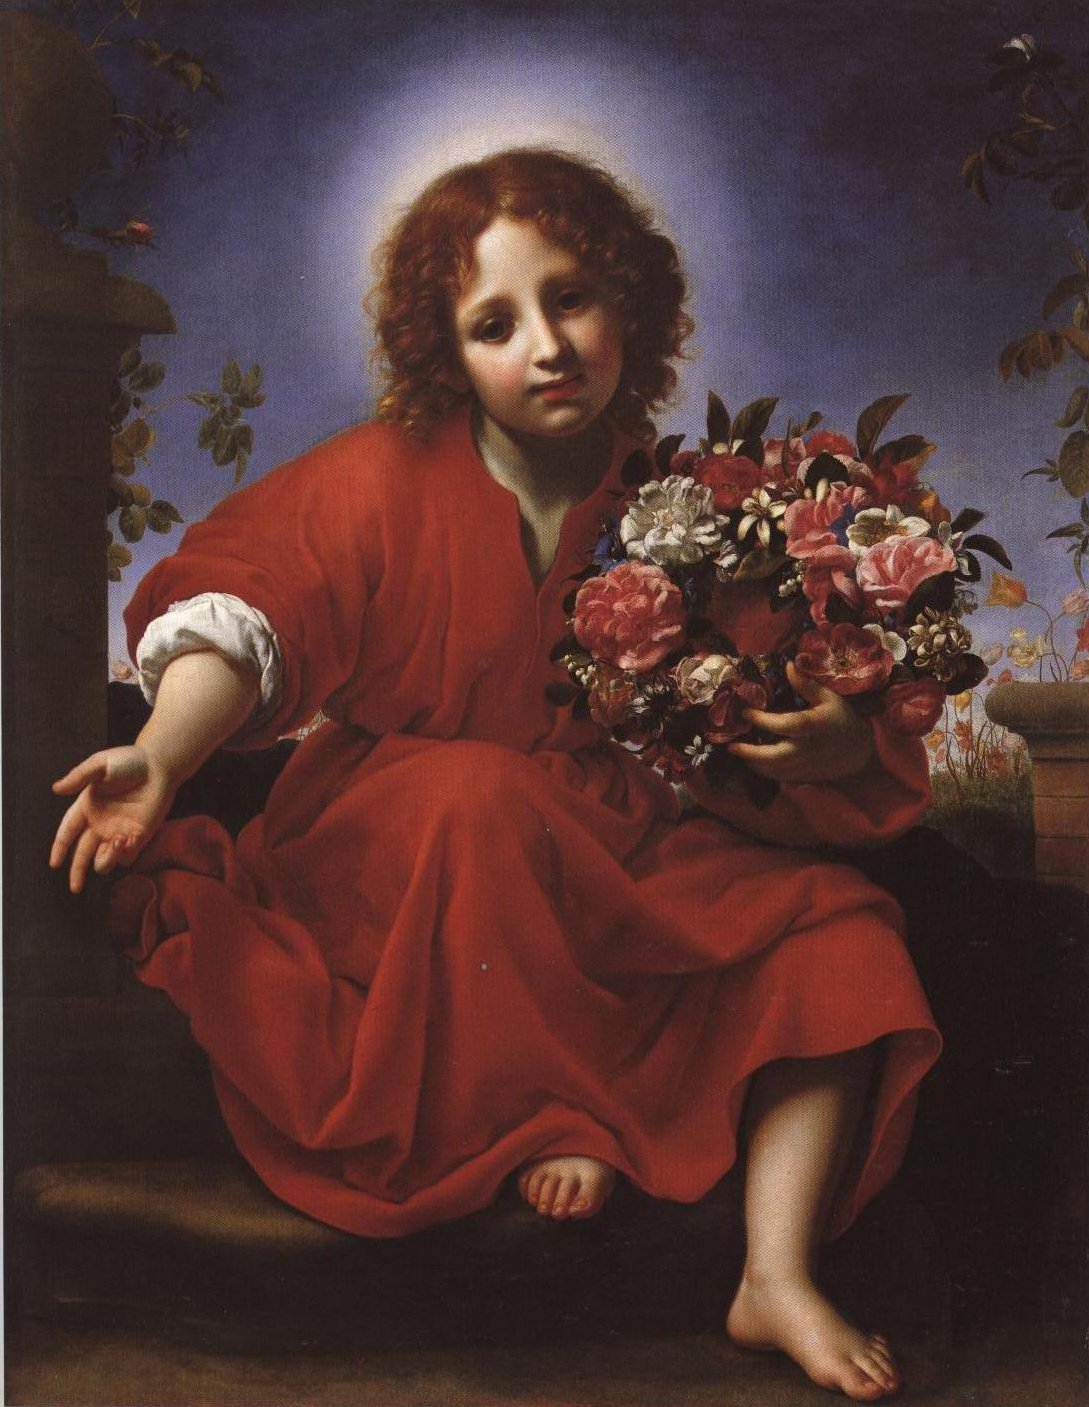 The Young Jesus With A Wreath Of Flowers | Carlo Dolci | Oil Painting